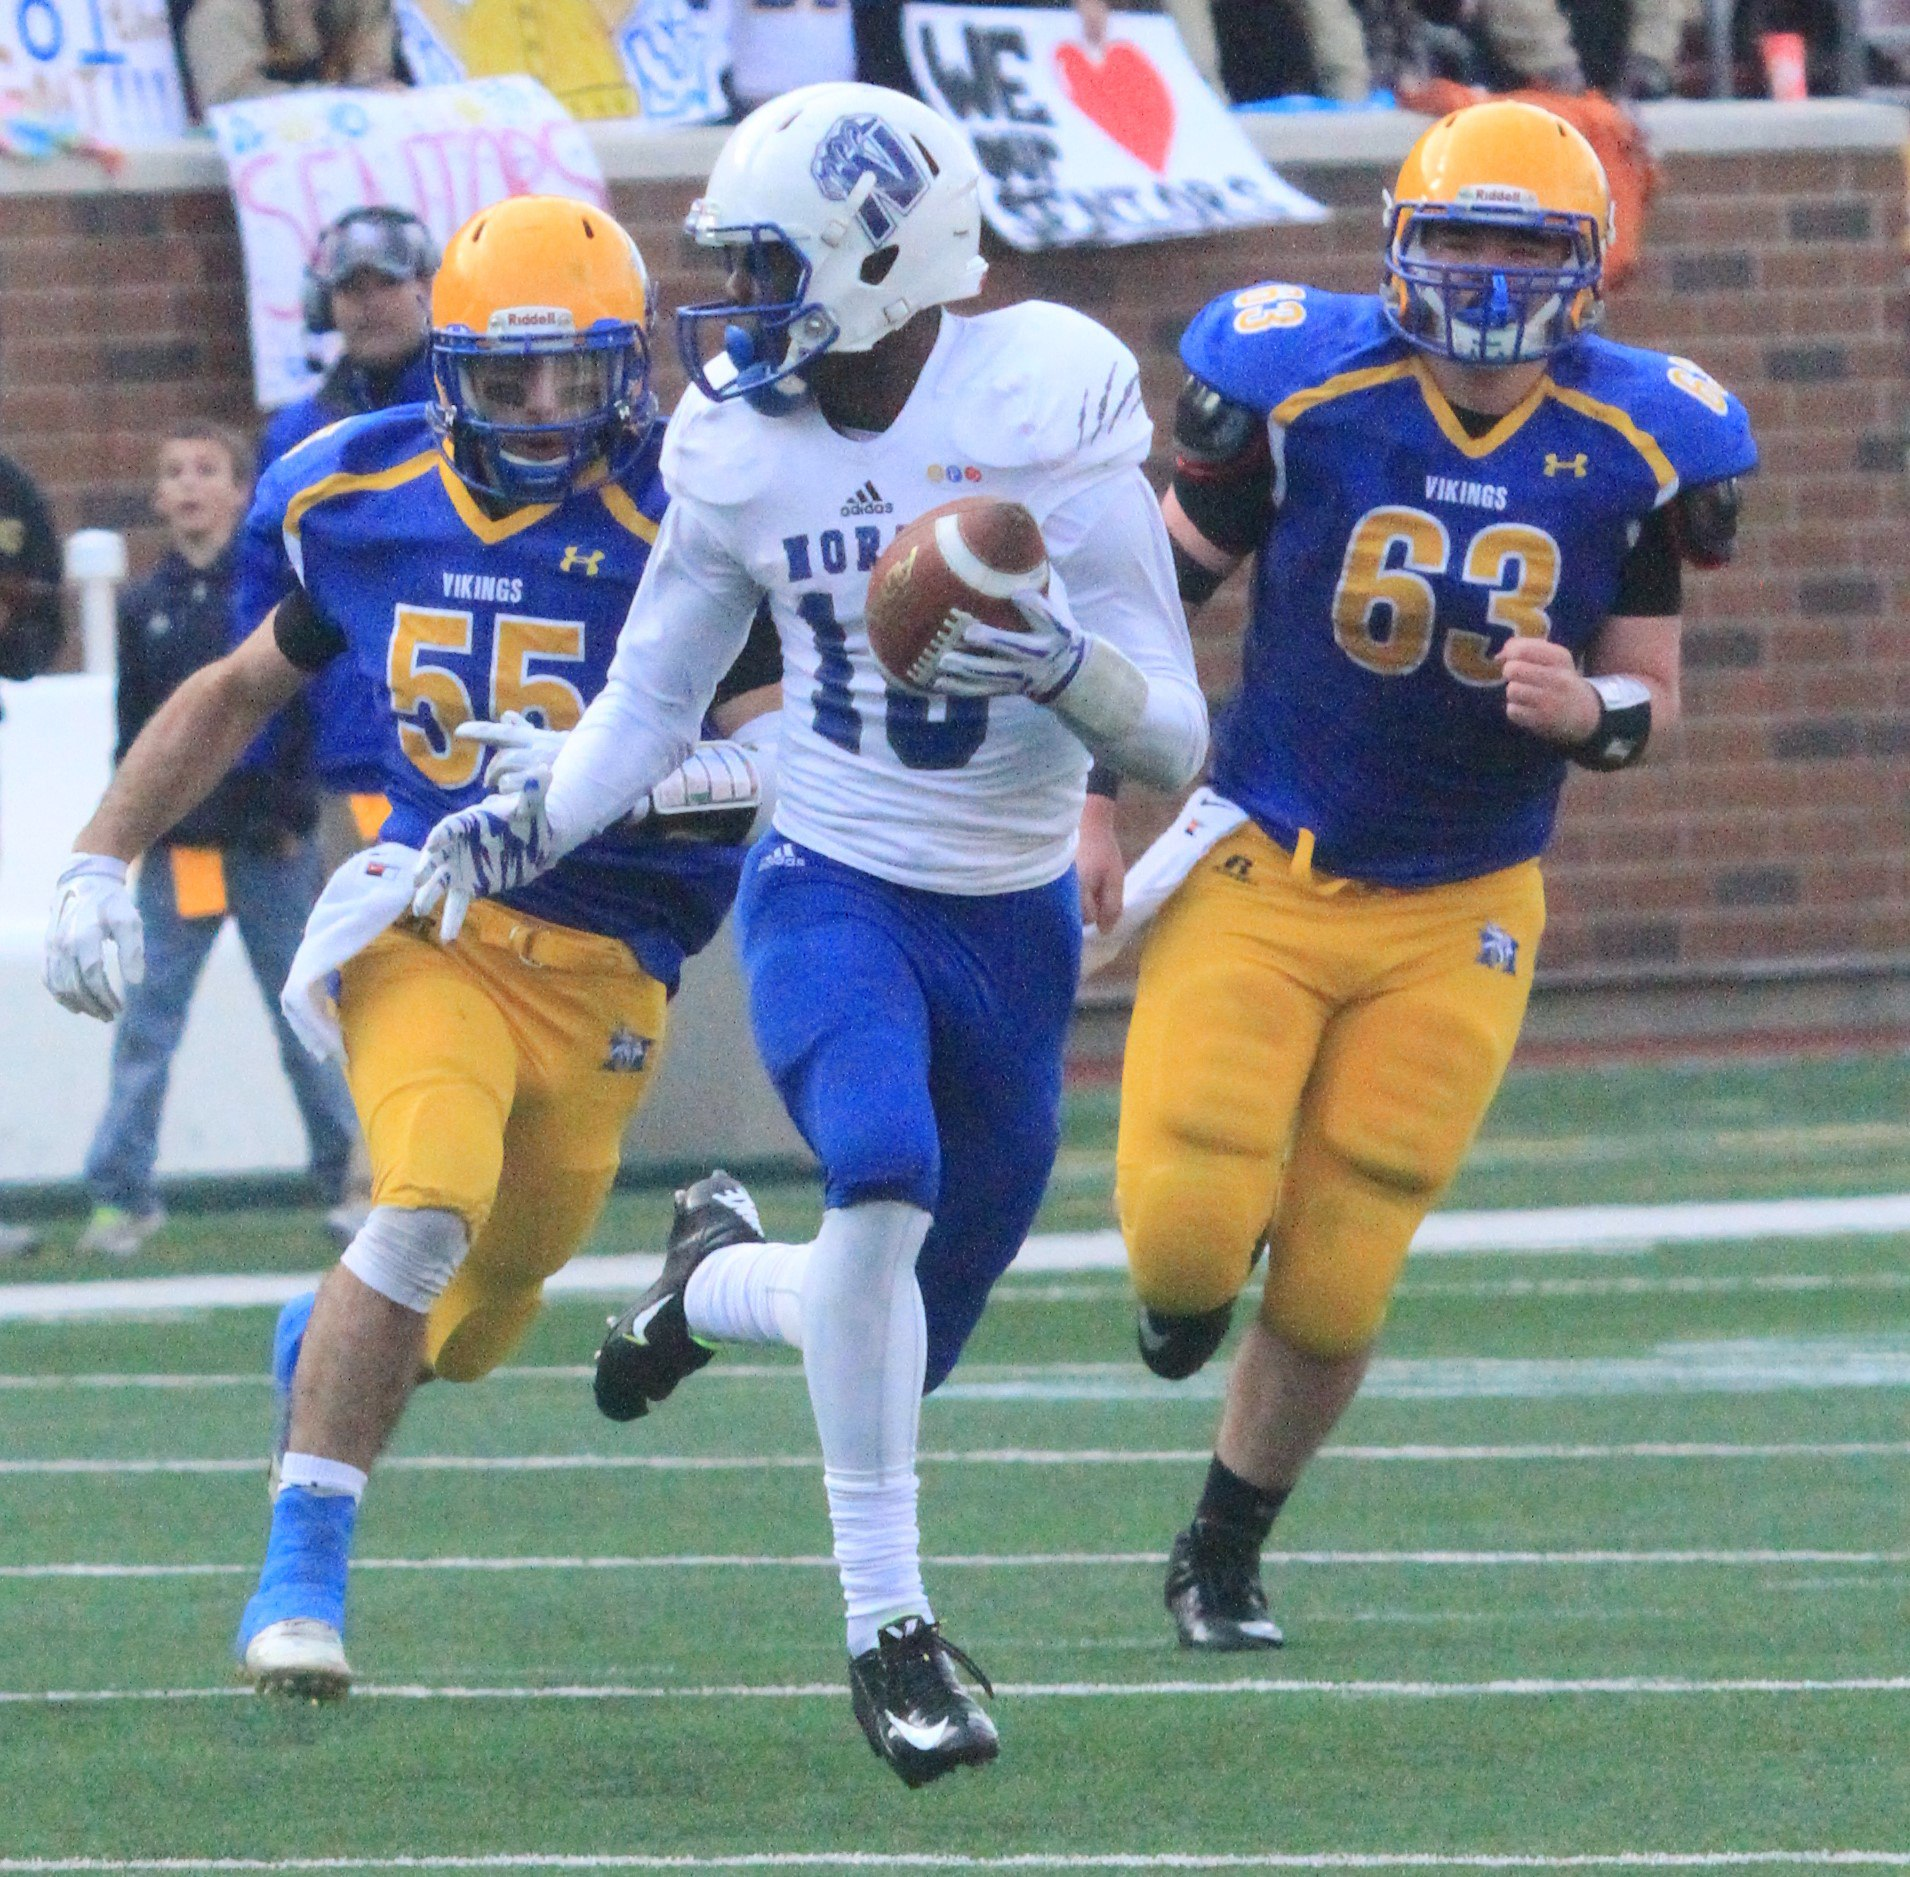 QB Tyler Johnson (10) dashes with two Mineota players in pursuit.